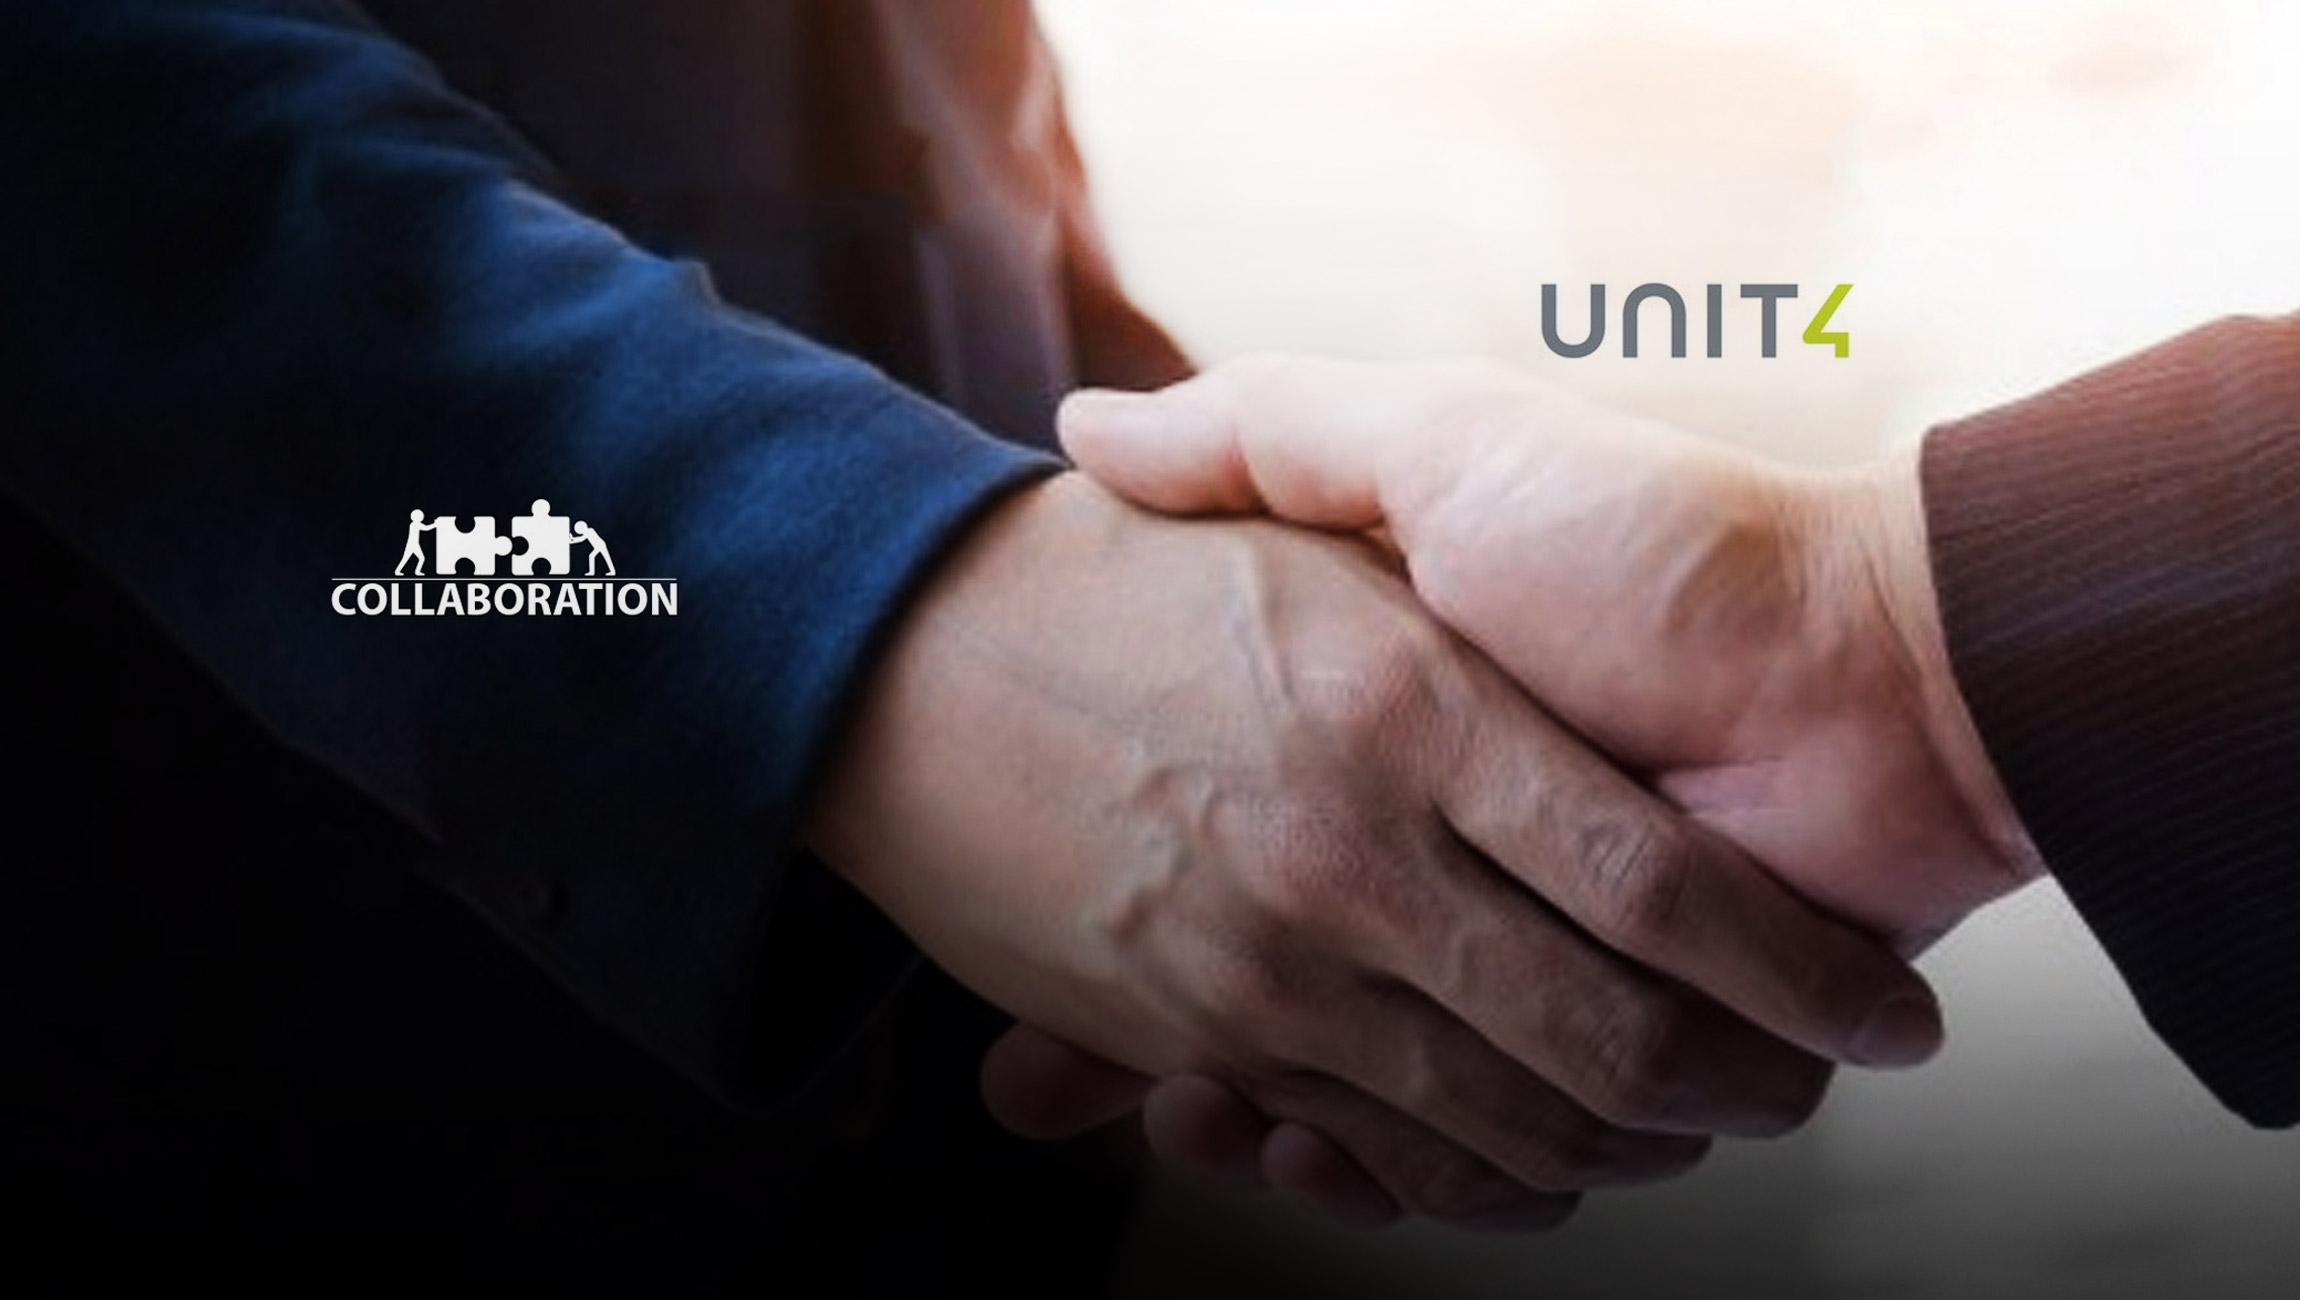 Unit4 and Raven Intel Announce Strategic Partnership to Drive Transparency in Enterprise Software Implementation Projects